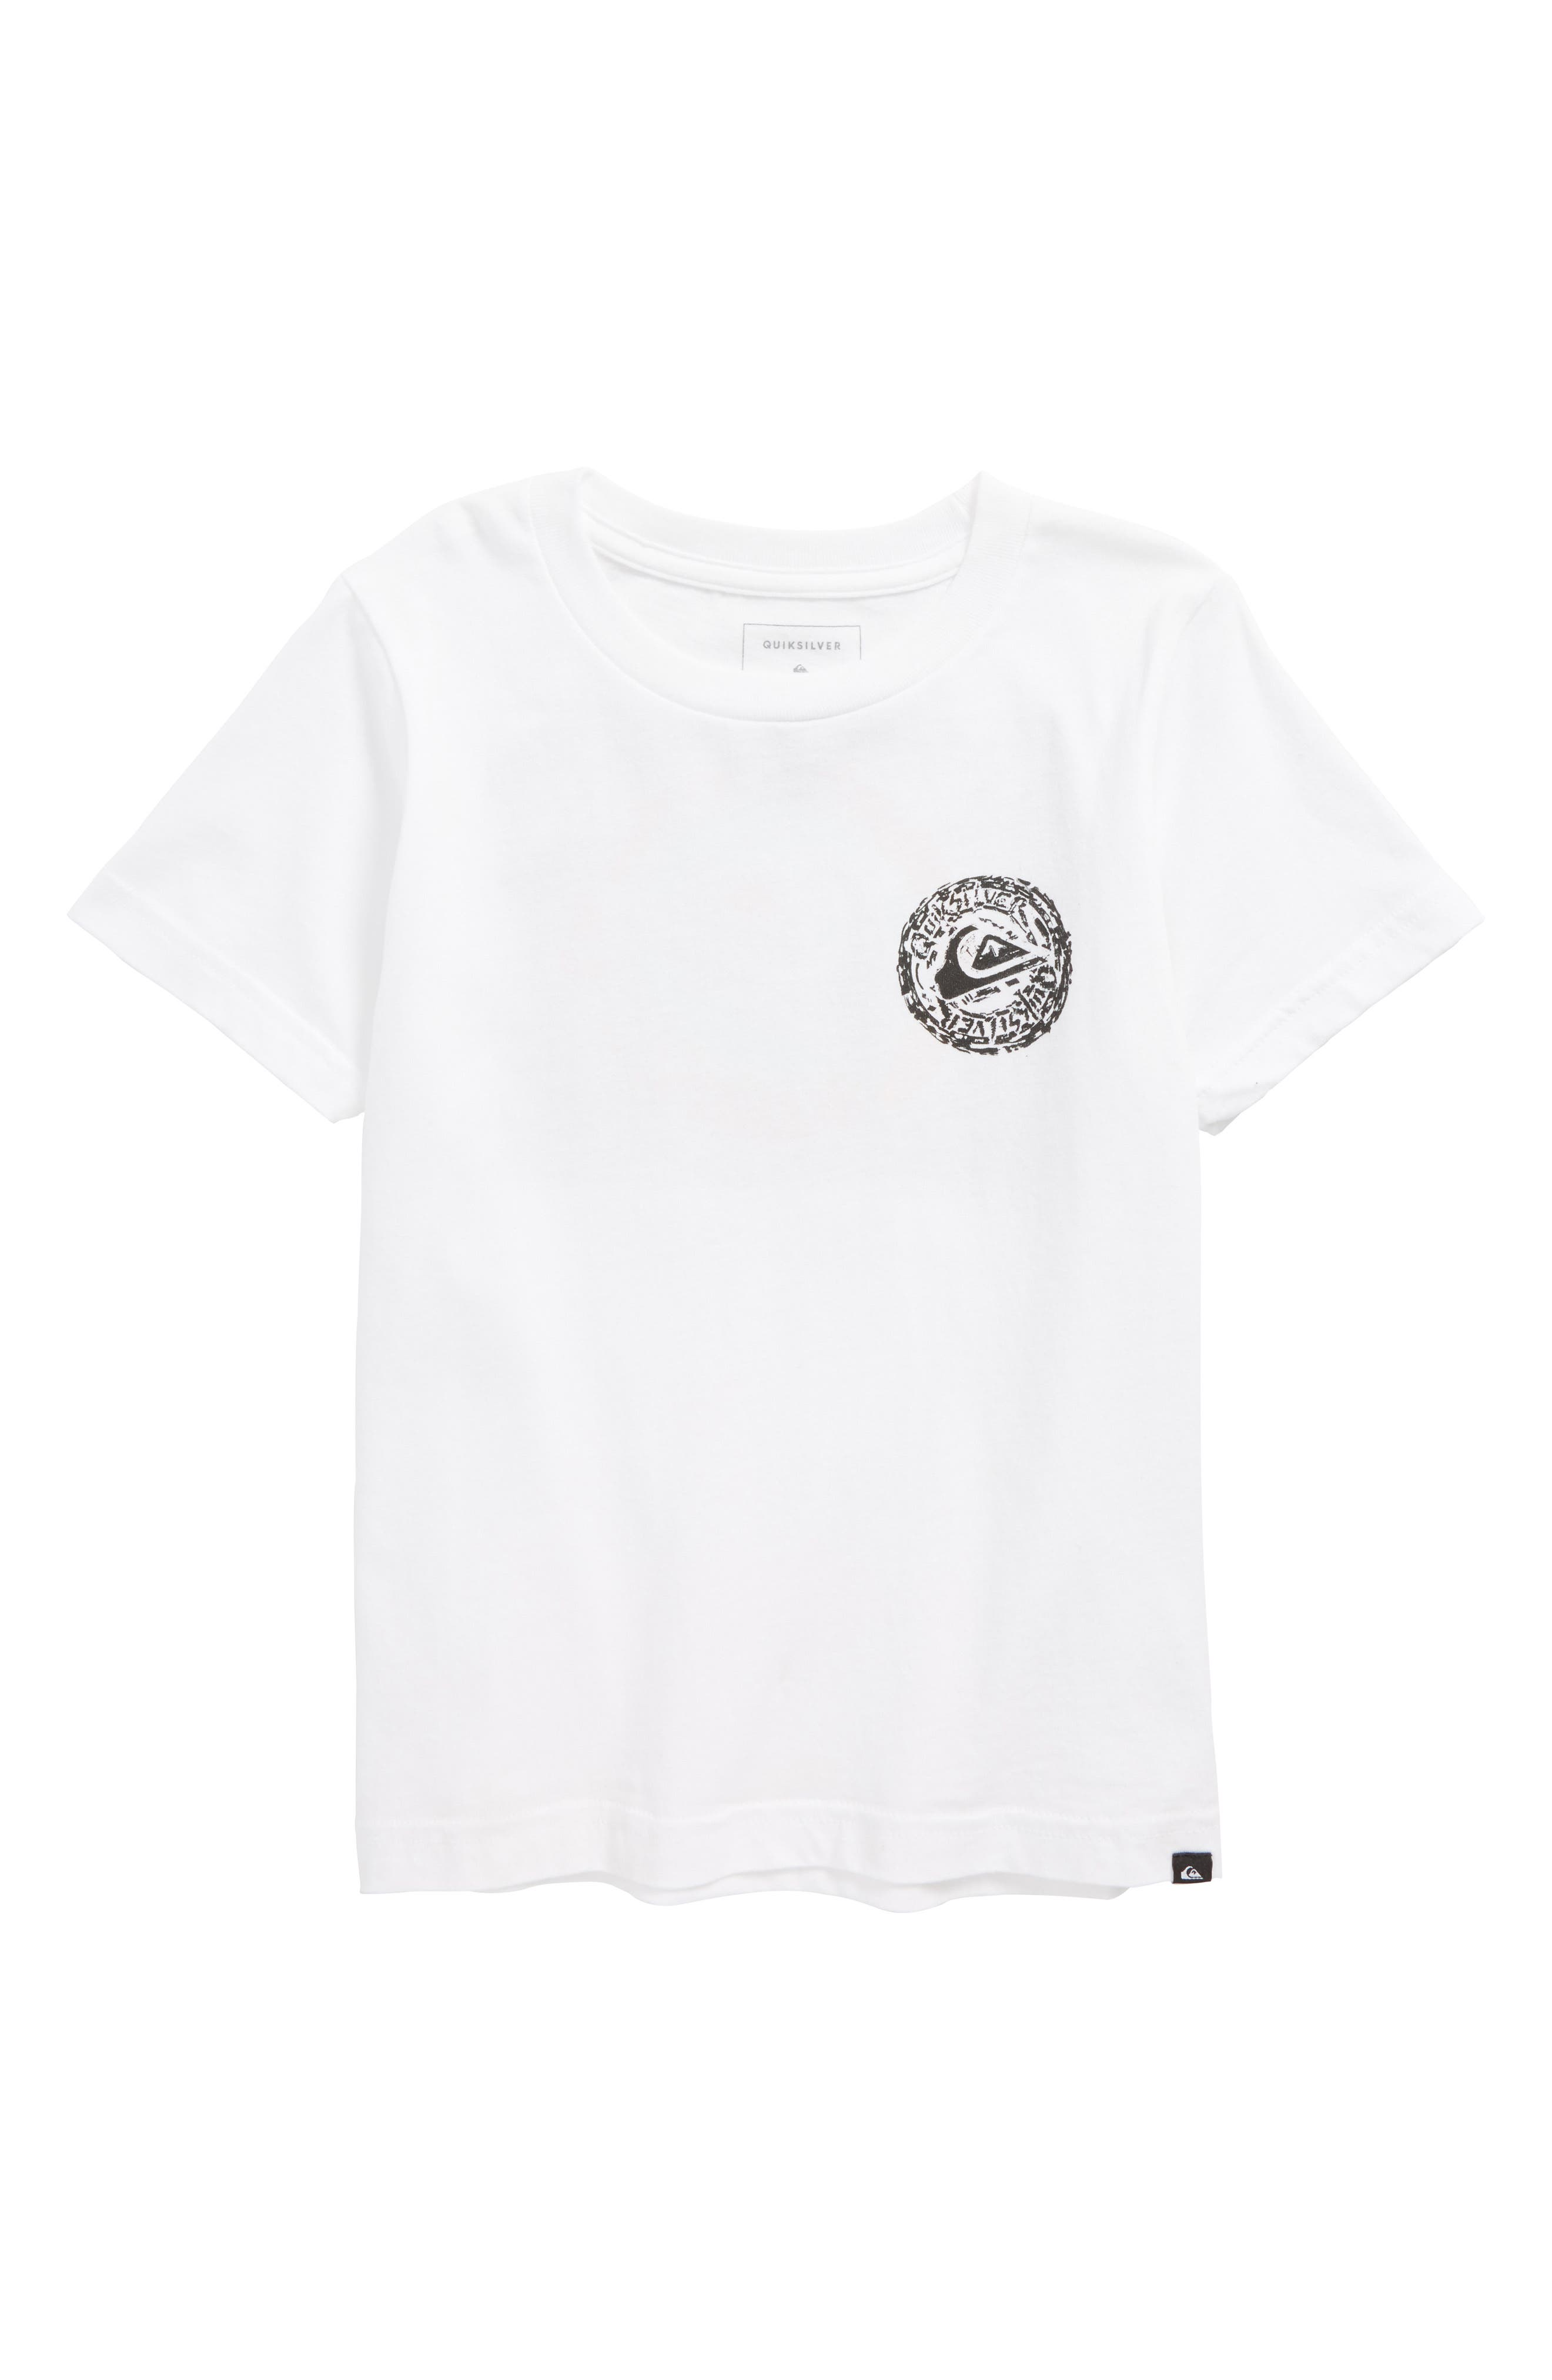 Quiksilver Elevens T-Shirt (Toddler Boys & Little Boys)